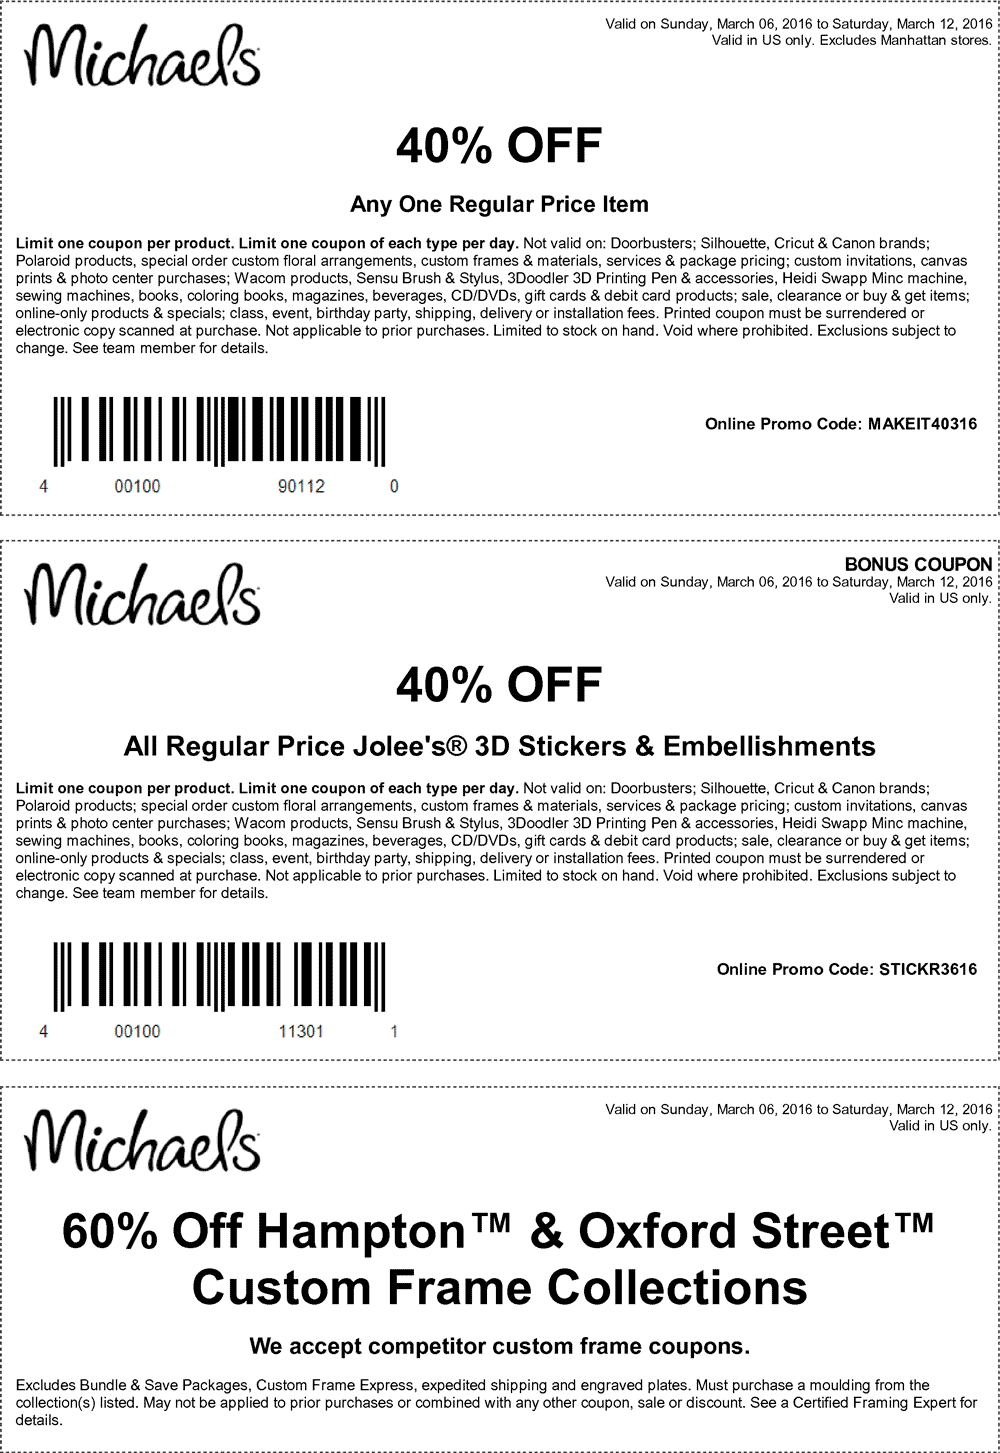 Michaels Coupon February 2017 40% off a single item at Michaels, or online via promo code MAKEIT40316